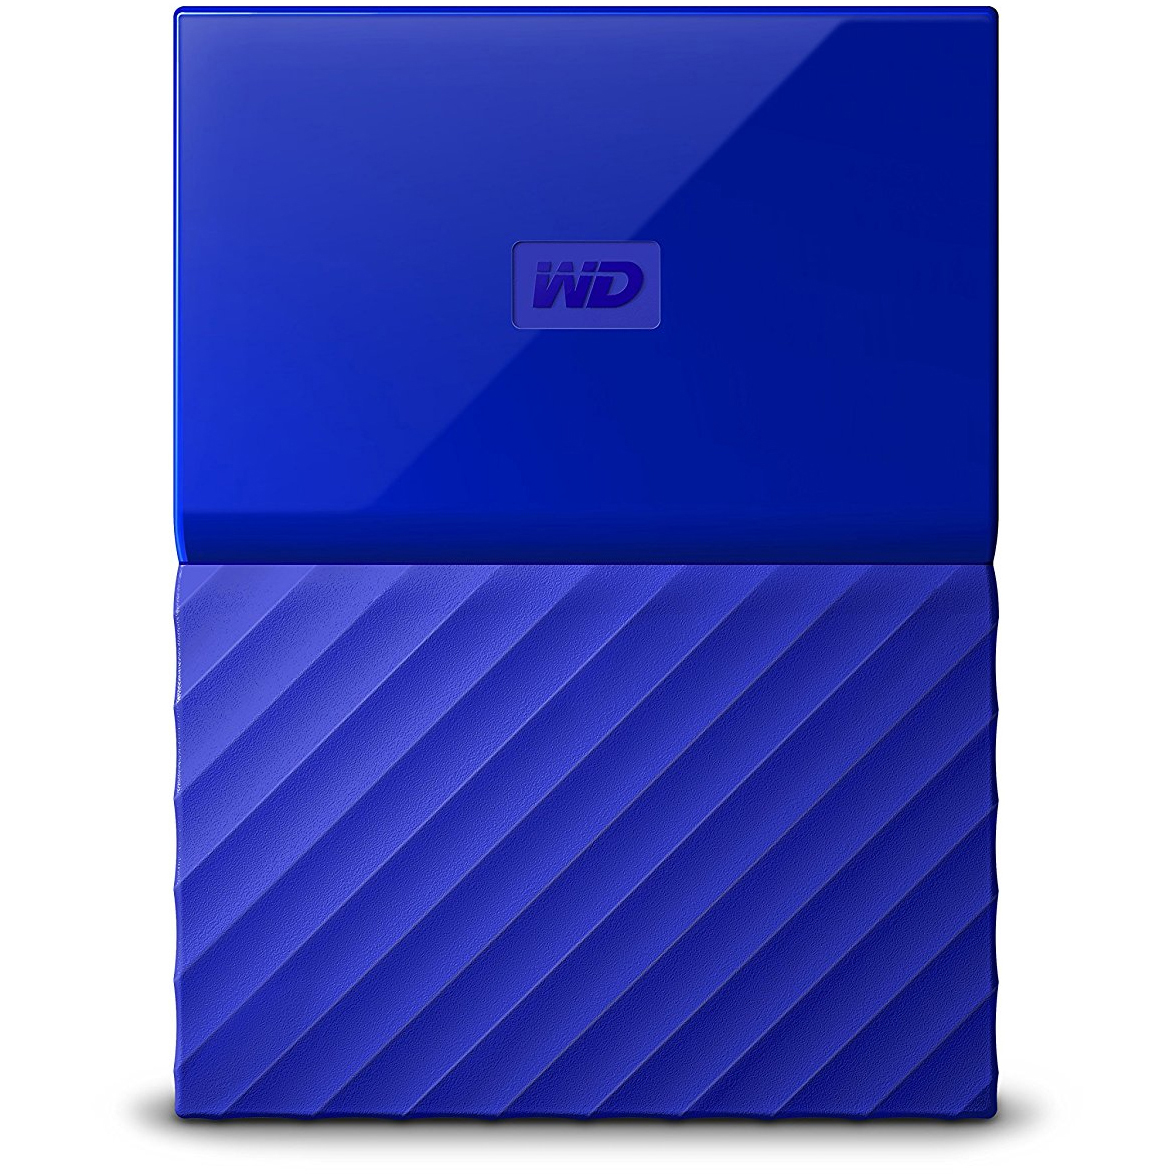 Original Western Digital My Passport 2TB Blue USB 3.0 External Hard Drive (WDBS4B0020BBL-EEEX)